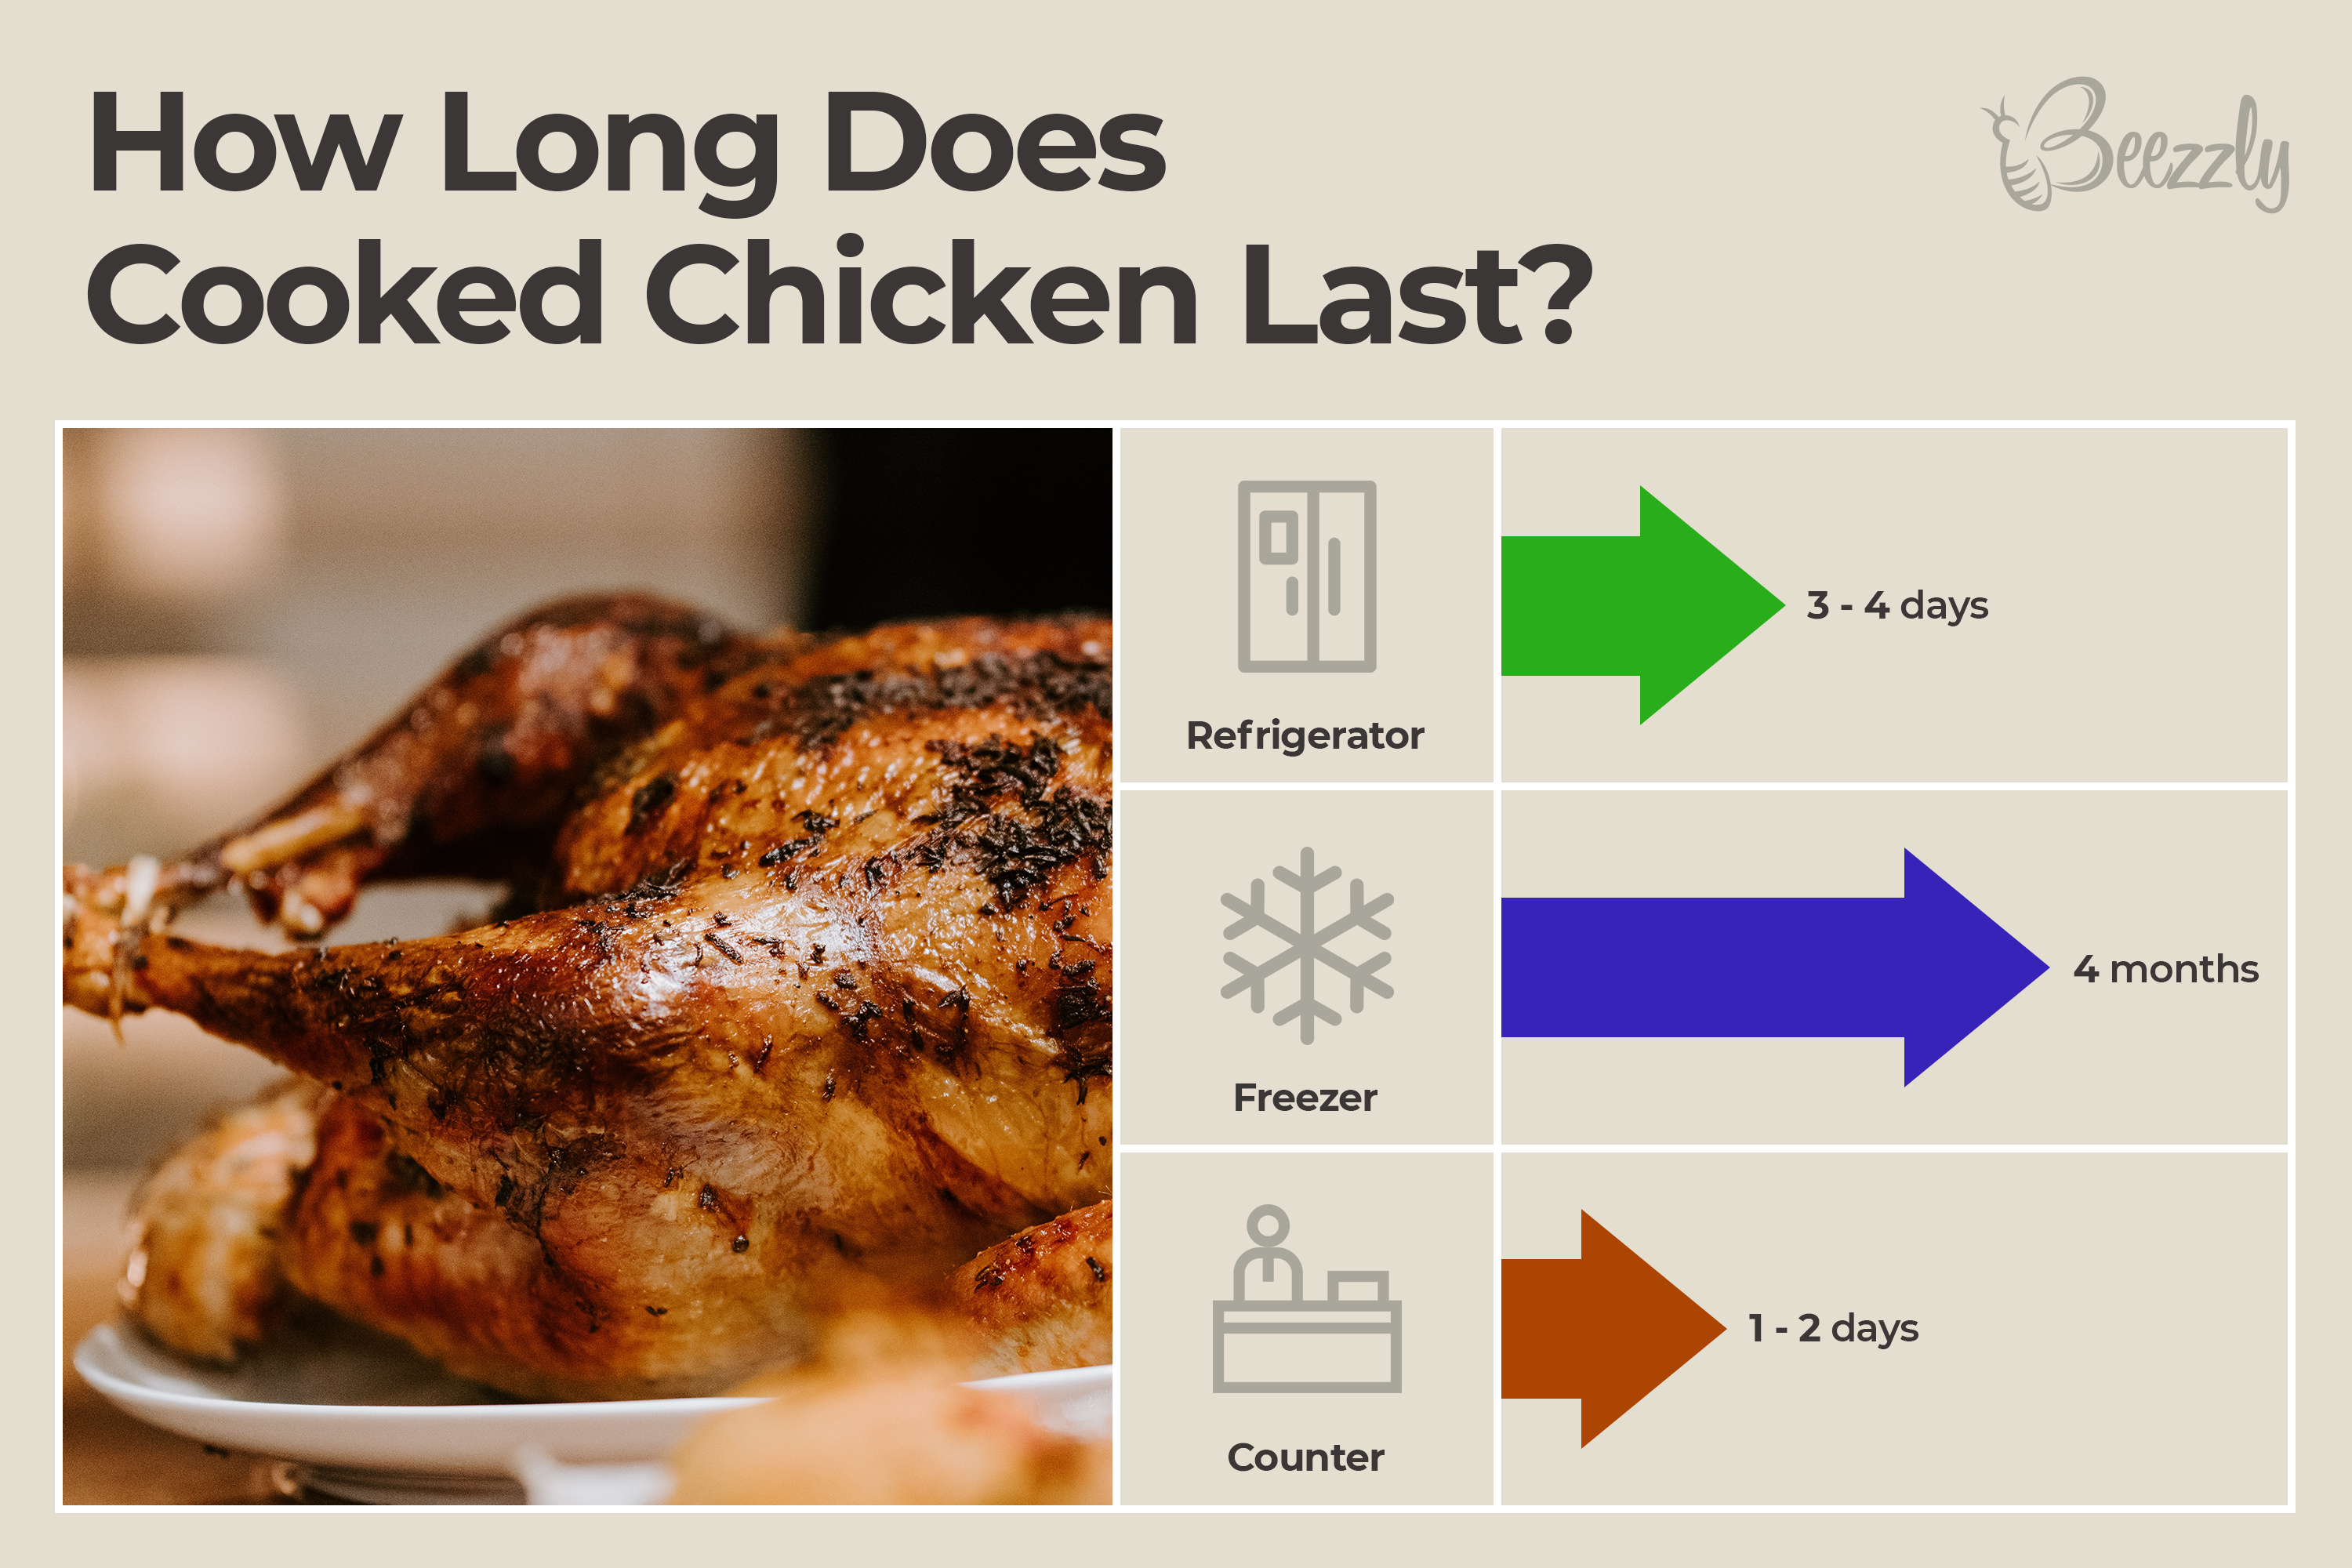 How long does cooked chicken last